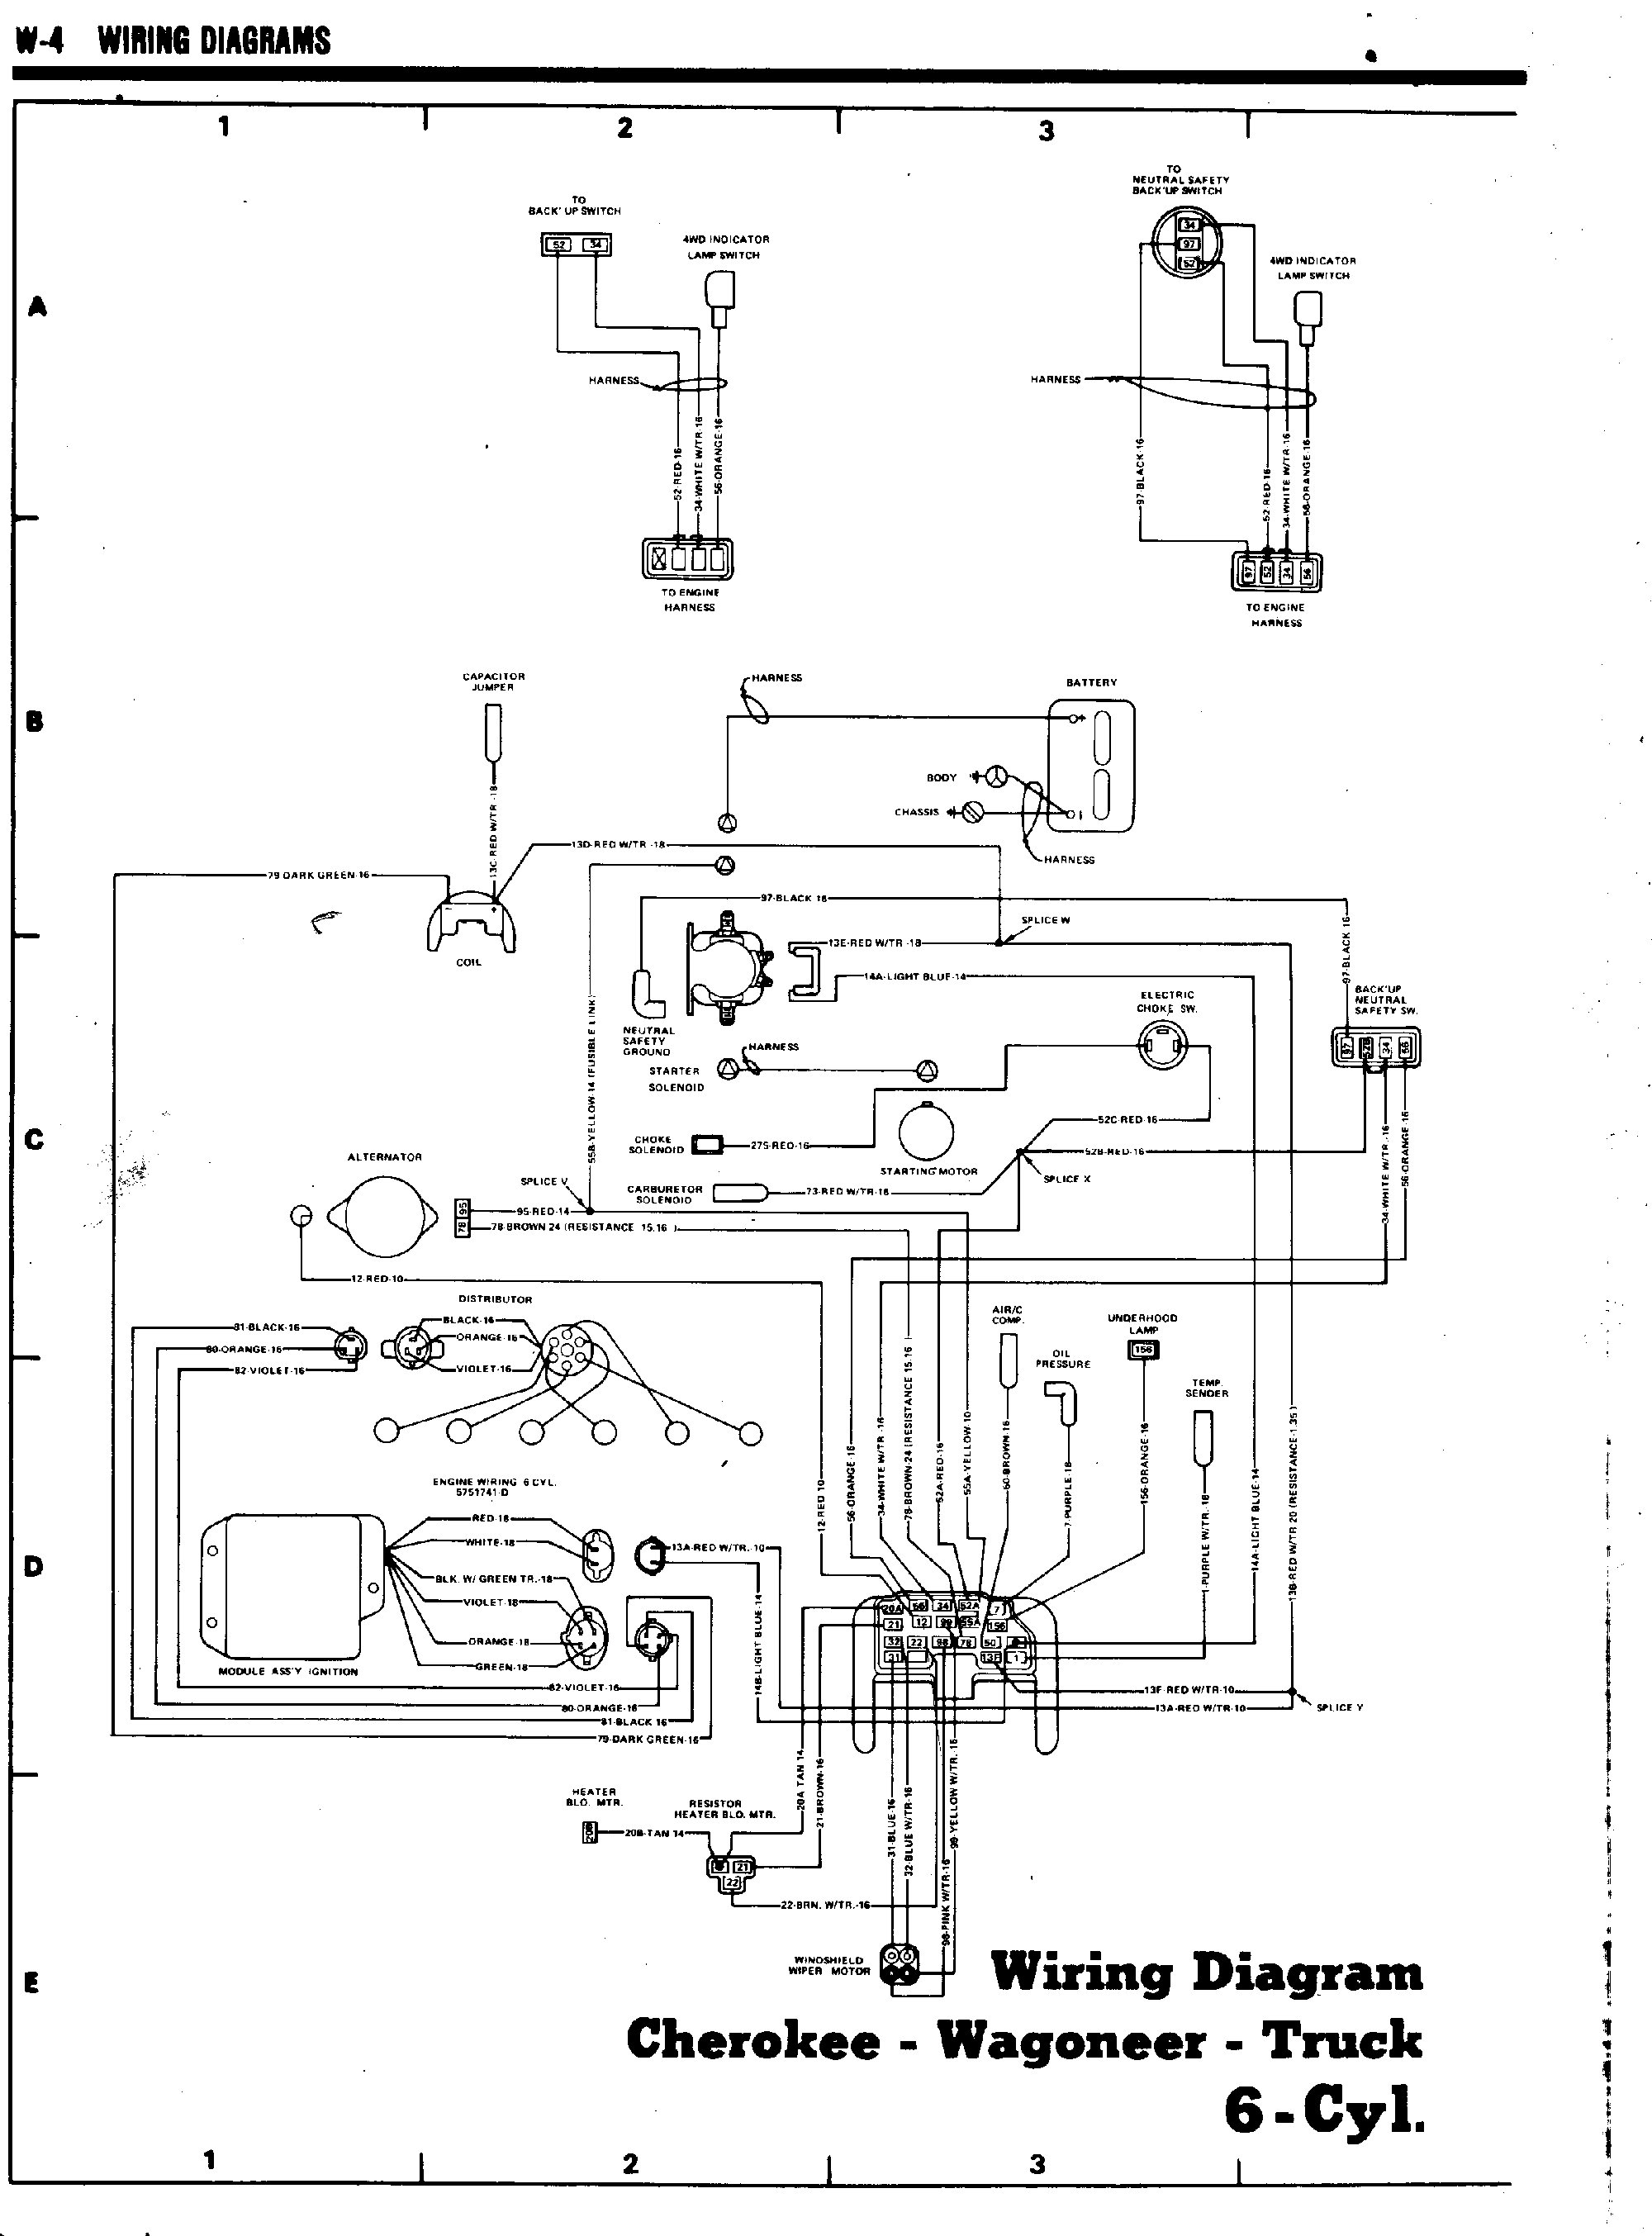 1980_cherokee_wagoneer_truck_6cyl_pg1 tom 'oljeep' collins fsj wiring page 1983 jeep j10 wiring diagram at fashall.co